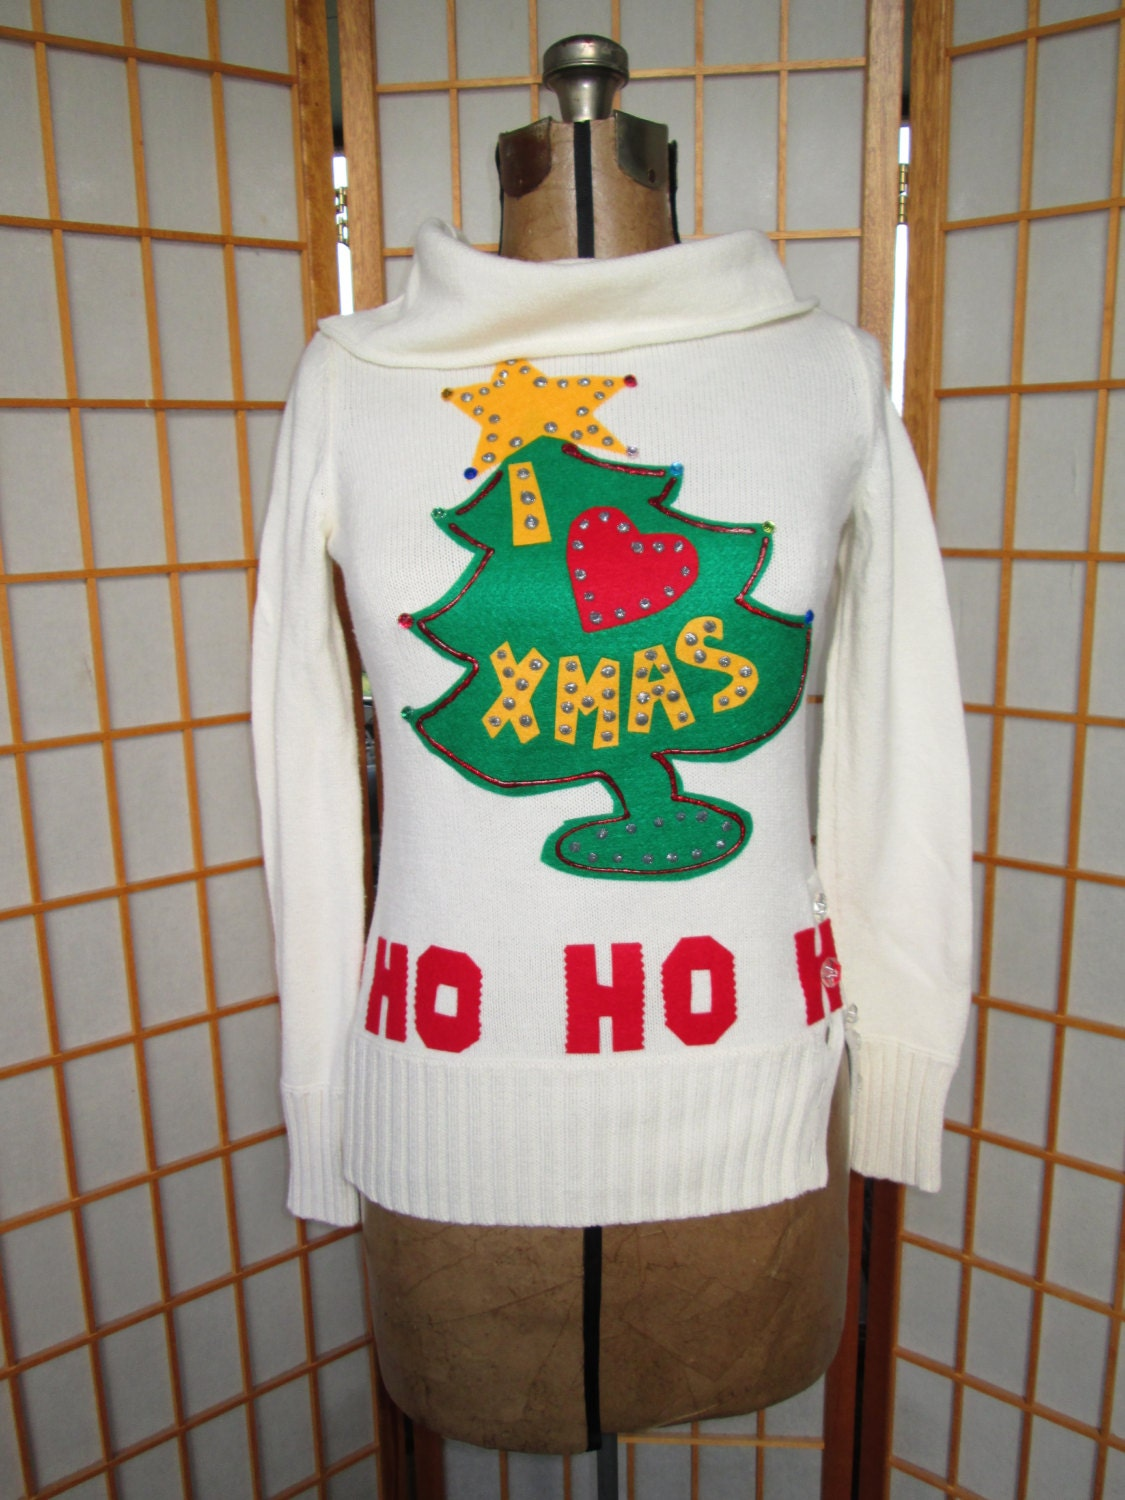 how the grinch stole christmas products retrofestiveca - How The Grinch Stole Christmas Sweater